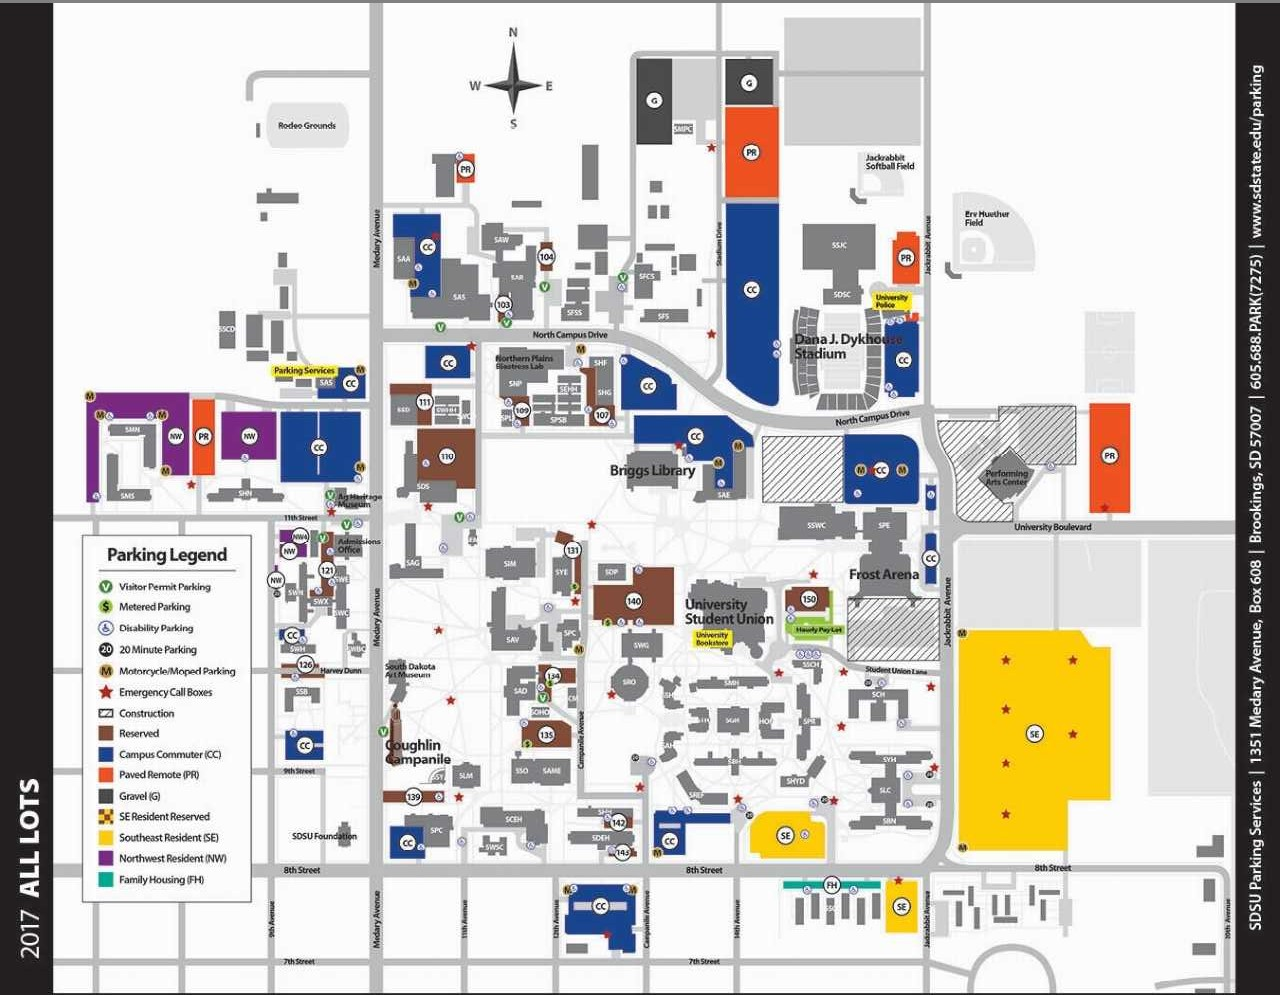 2017pkg_alllots_0 San Go State University Parking Map on oregon state university map, montana state university campus map, university business center map, cta bus routes map, princeton university map, university beach map, university library map, chapman university map, university school map, university police, ohio university campus map, mankato state university map, university heat map, auburn university map, university transit map,